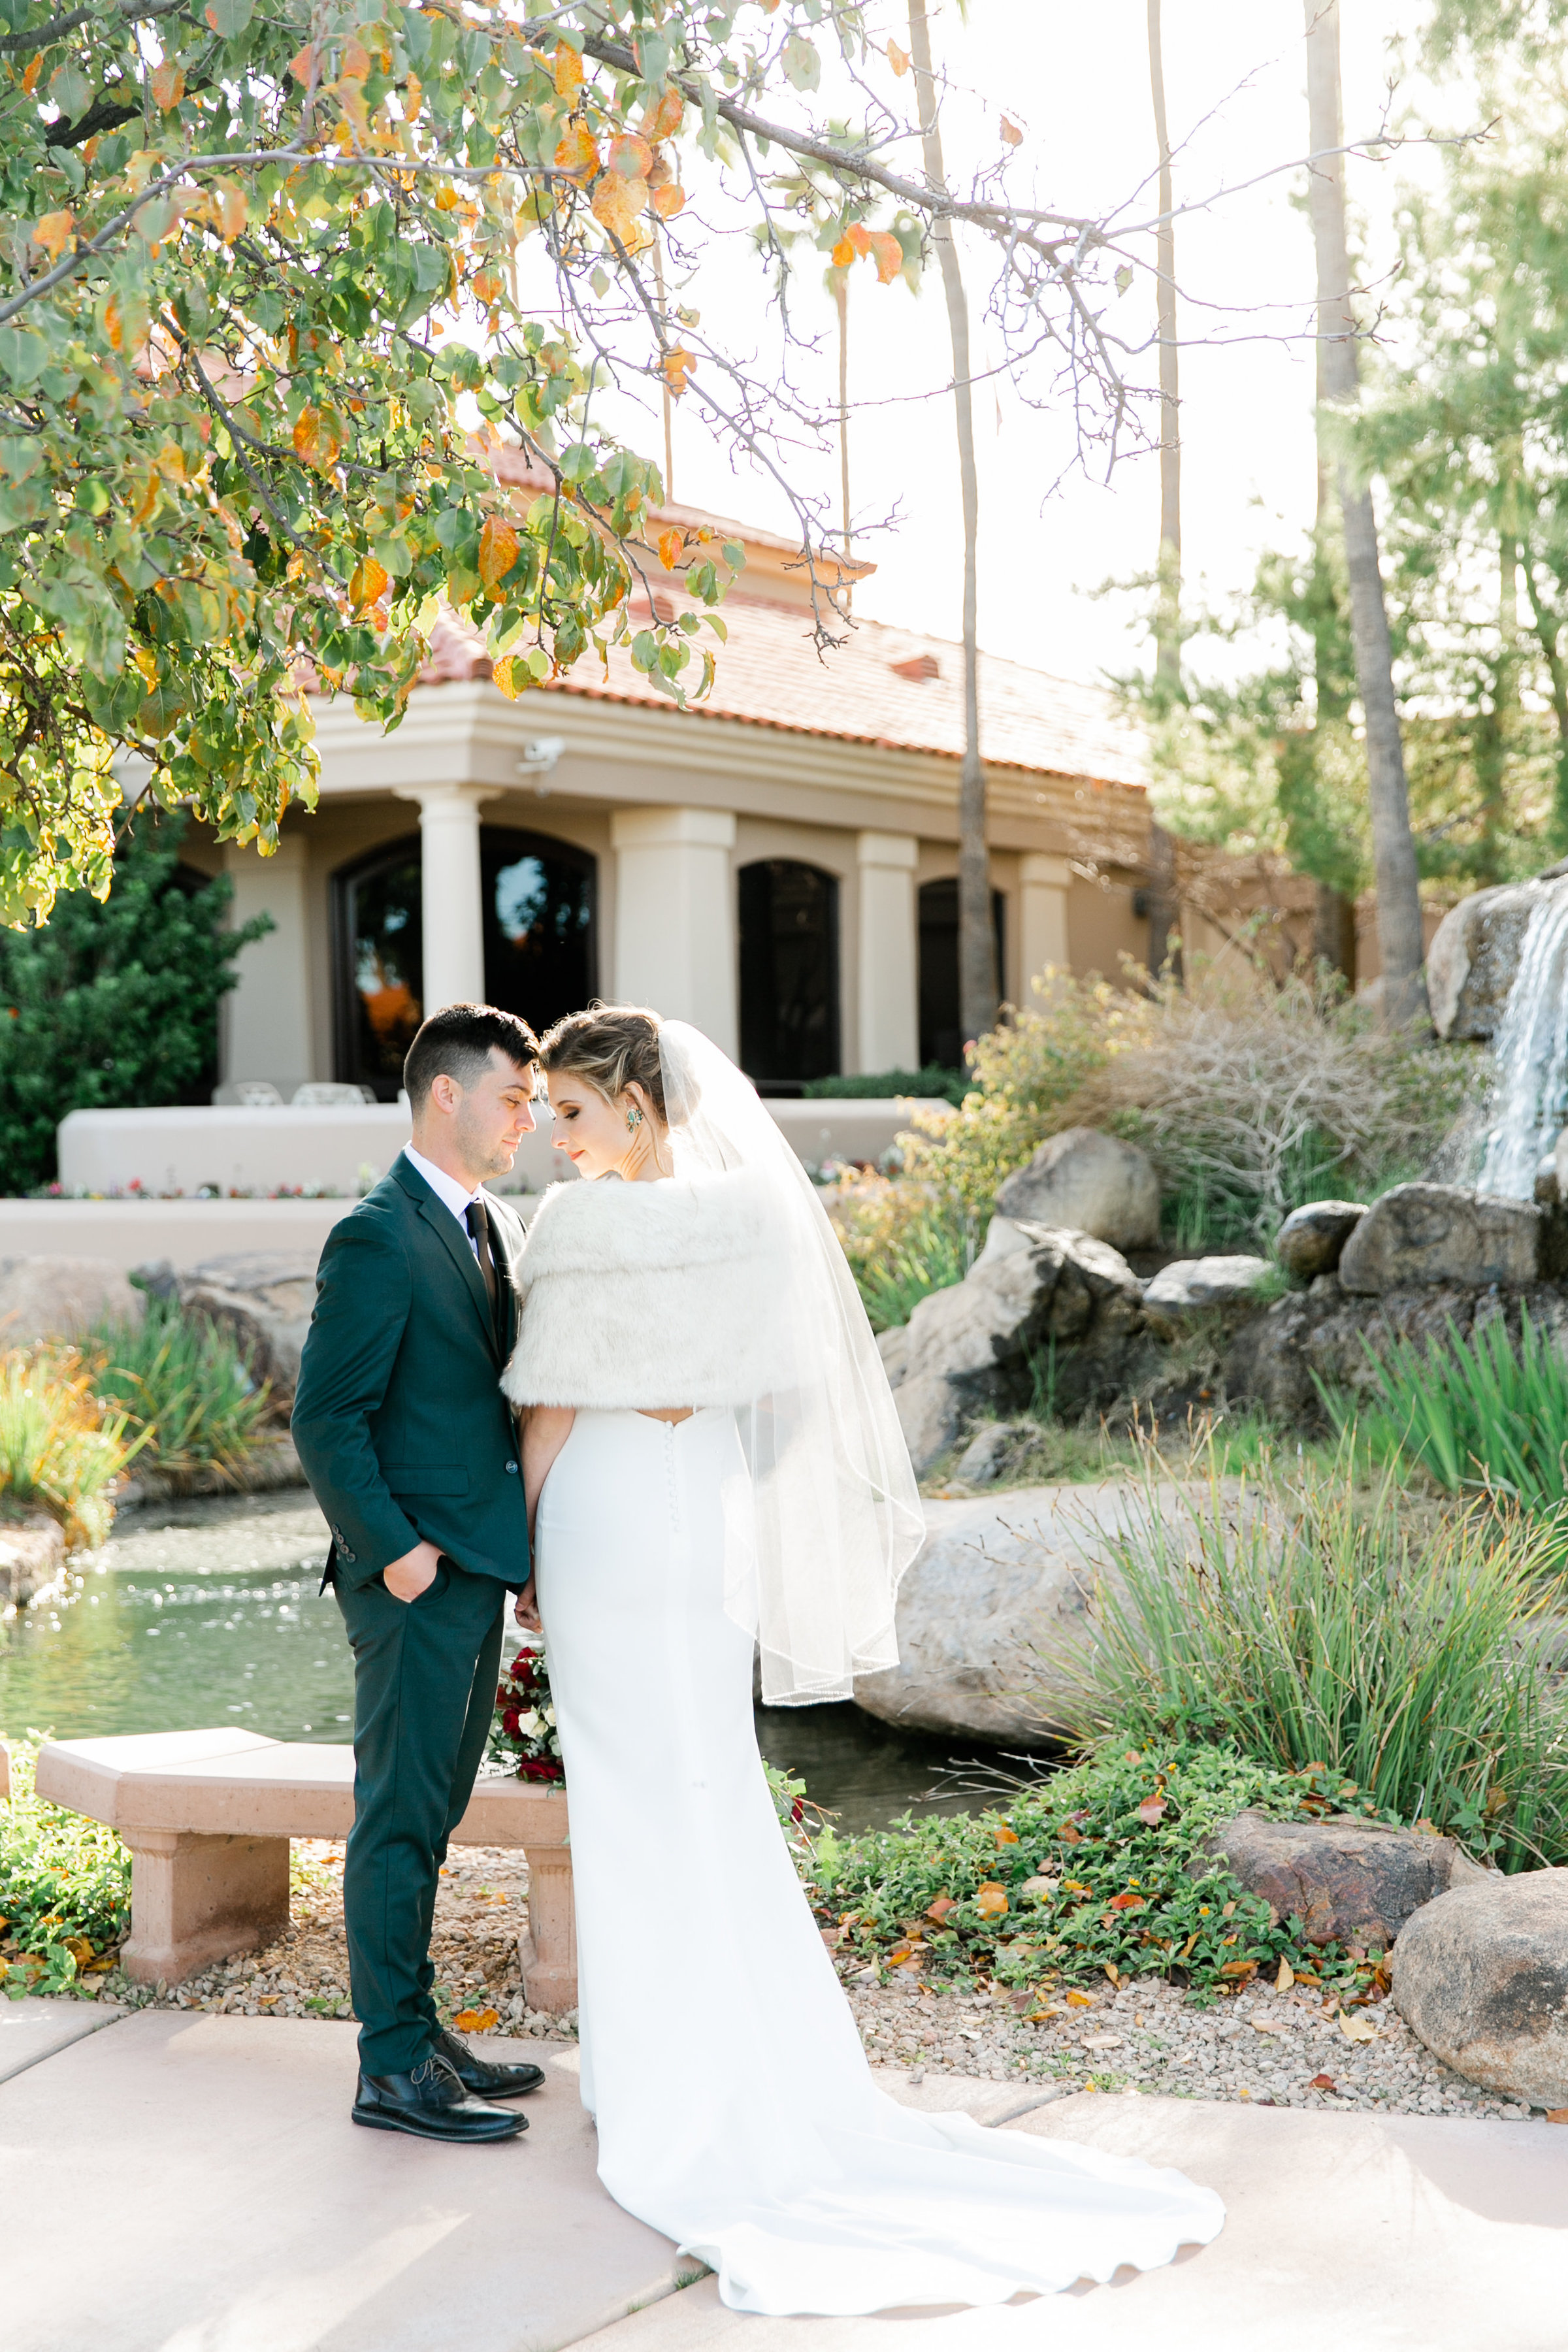 Karlie Colleen Photography - Gilbert Arizona Wedding - Val Vista Lakes - Brynne & Josh-464